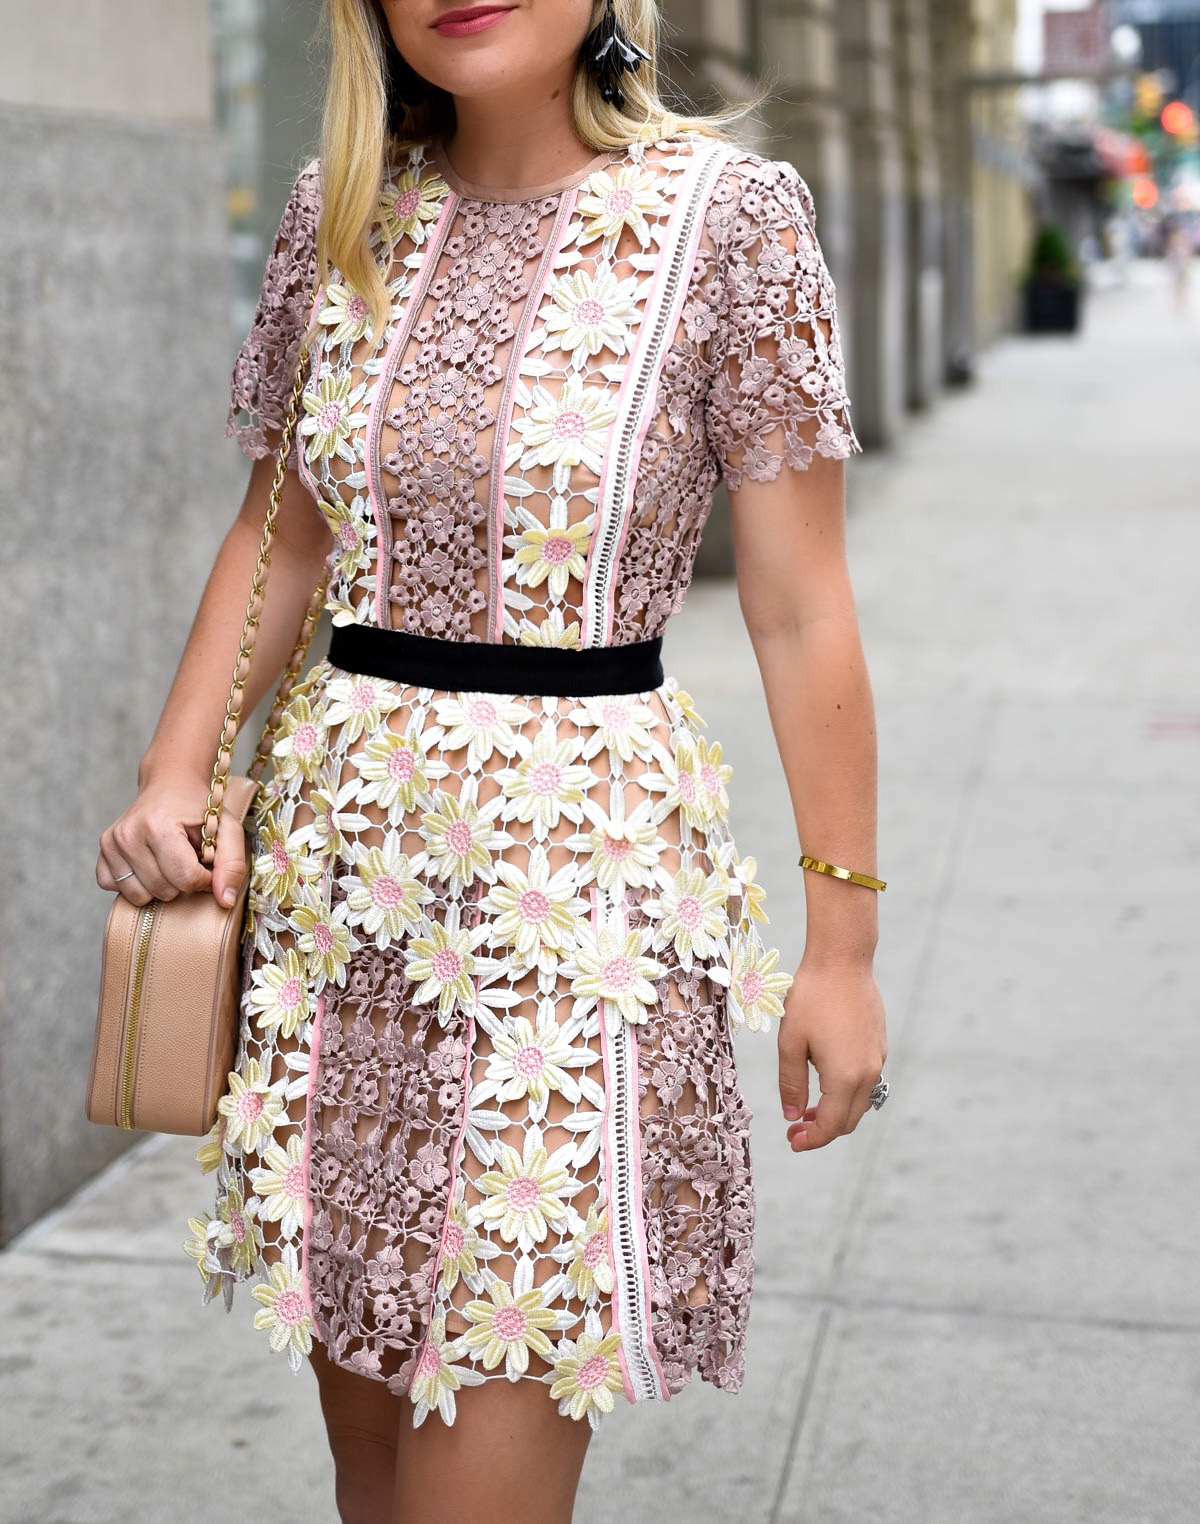 Floral-Lace-Dress, Self-Portrait-3D-Floral-Lace-Peplum-Dress, Chanel-Handbag, Lo-Murphy